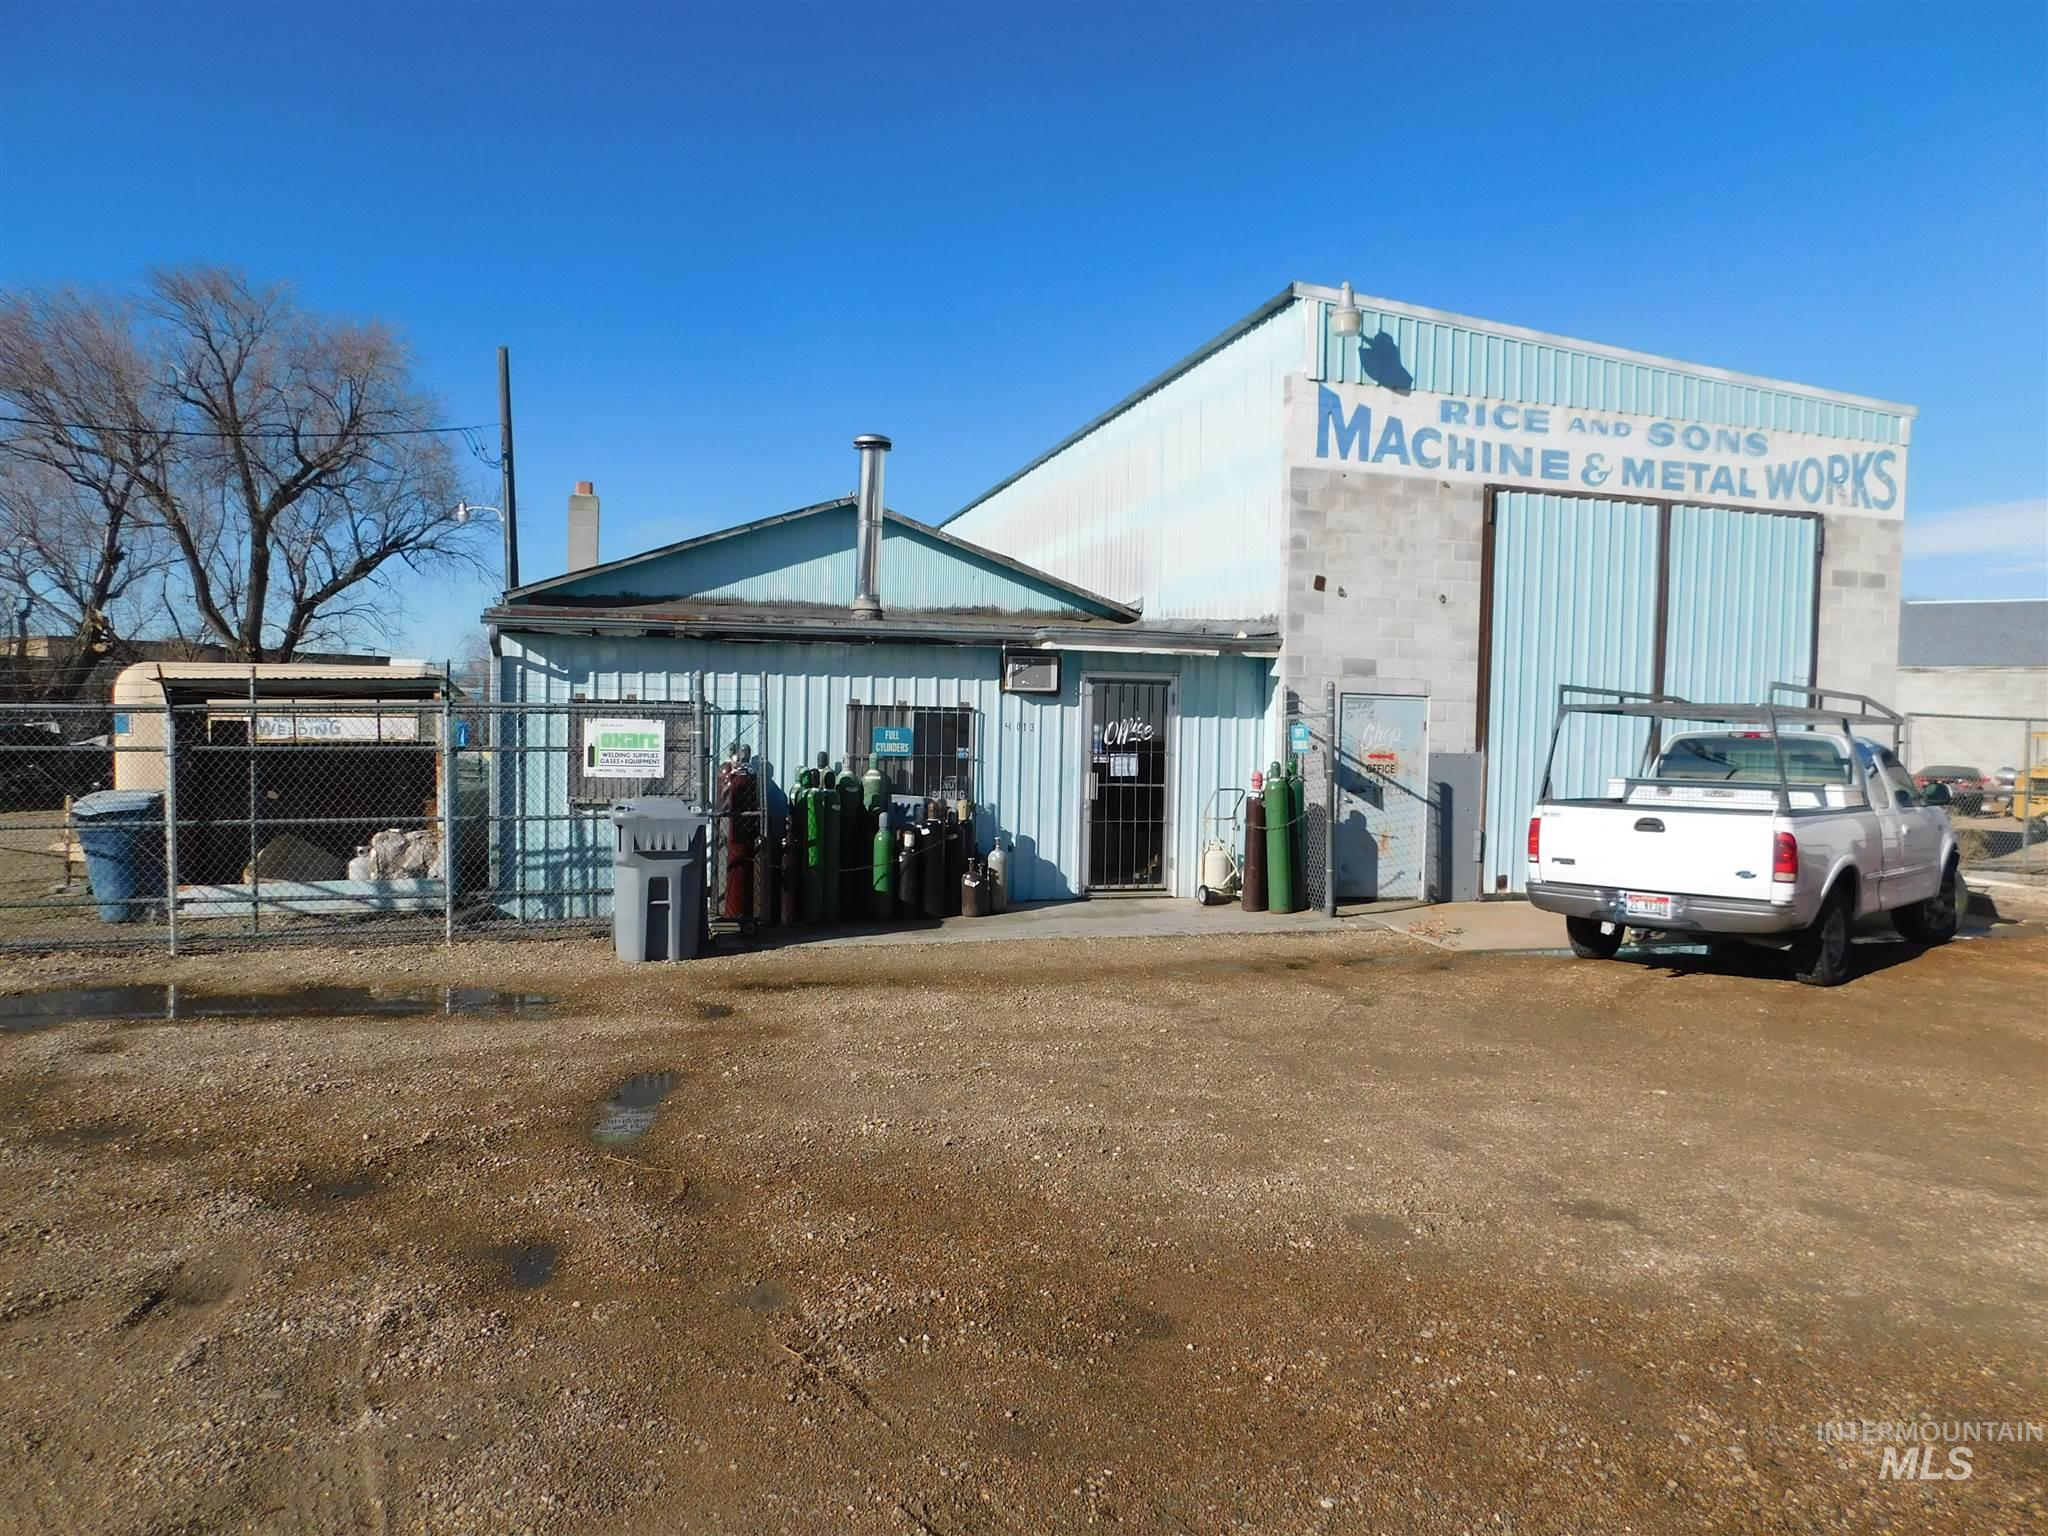 4013 E Ustick Road, Caldwell, Idaho 83605, Business/Commercial For Sale, Price $850,000, 98790935